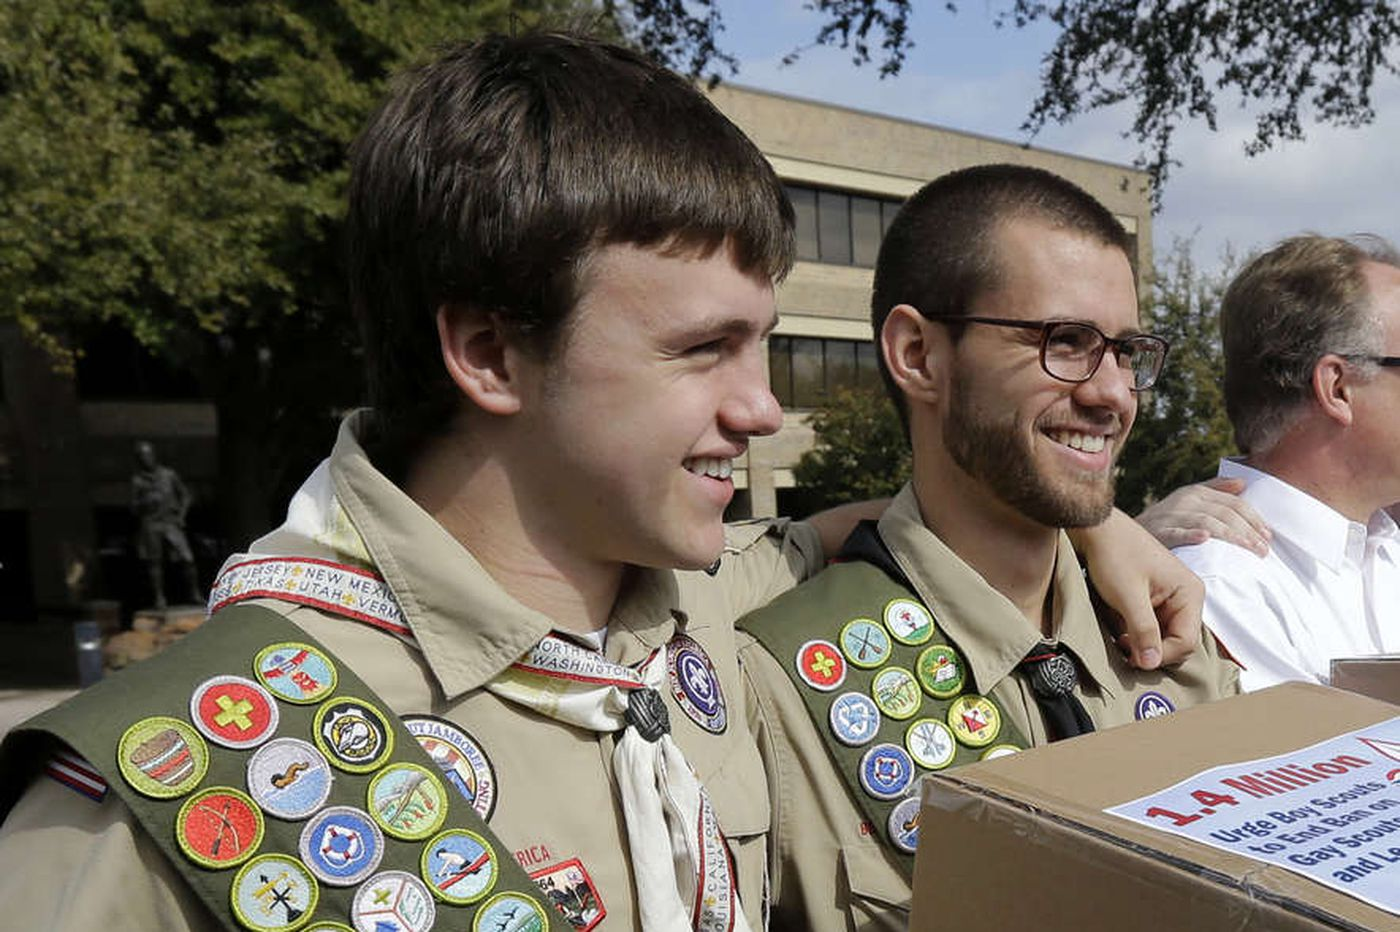 Inquirer Editorial: Scouts honor history's march toward inclusion